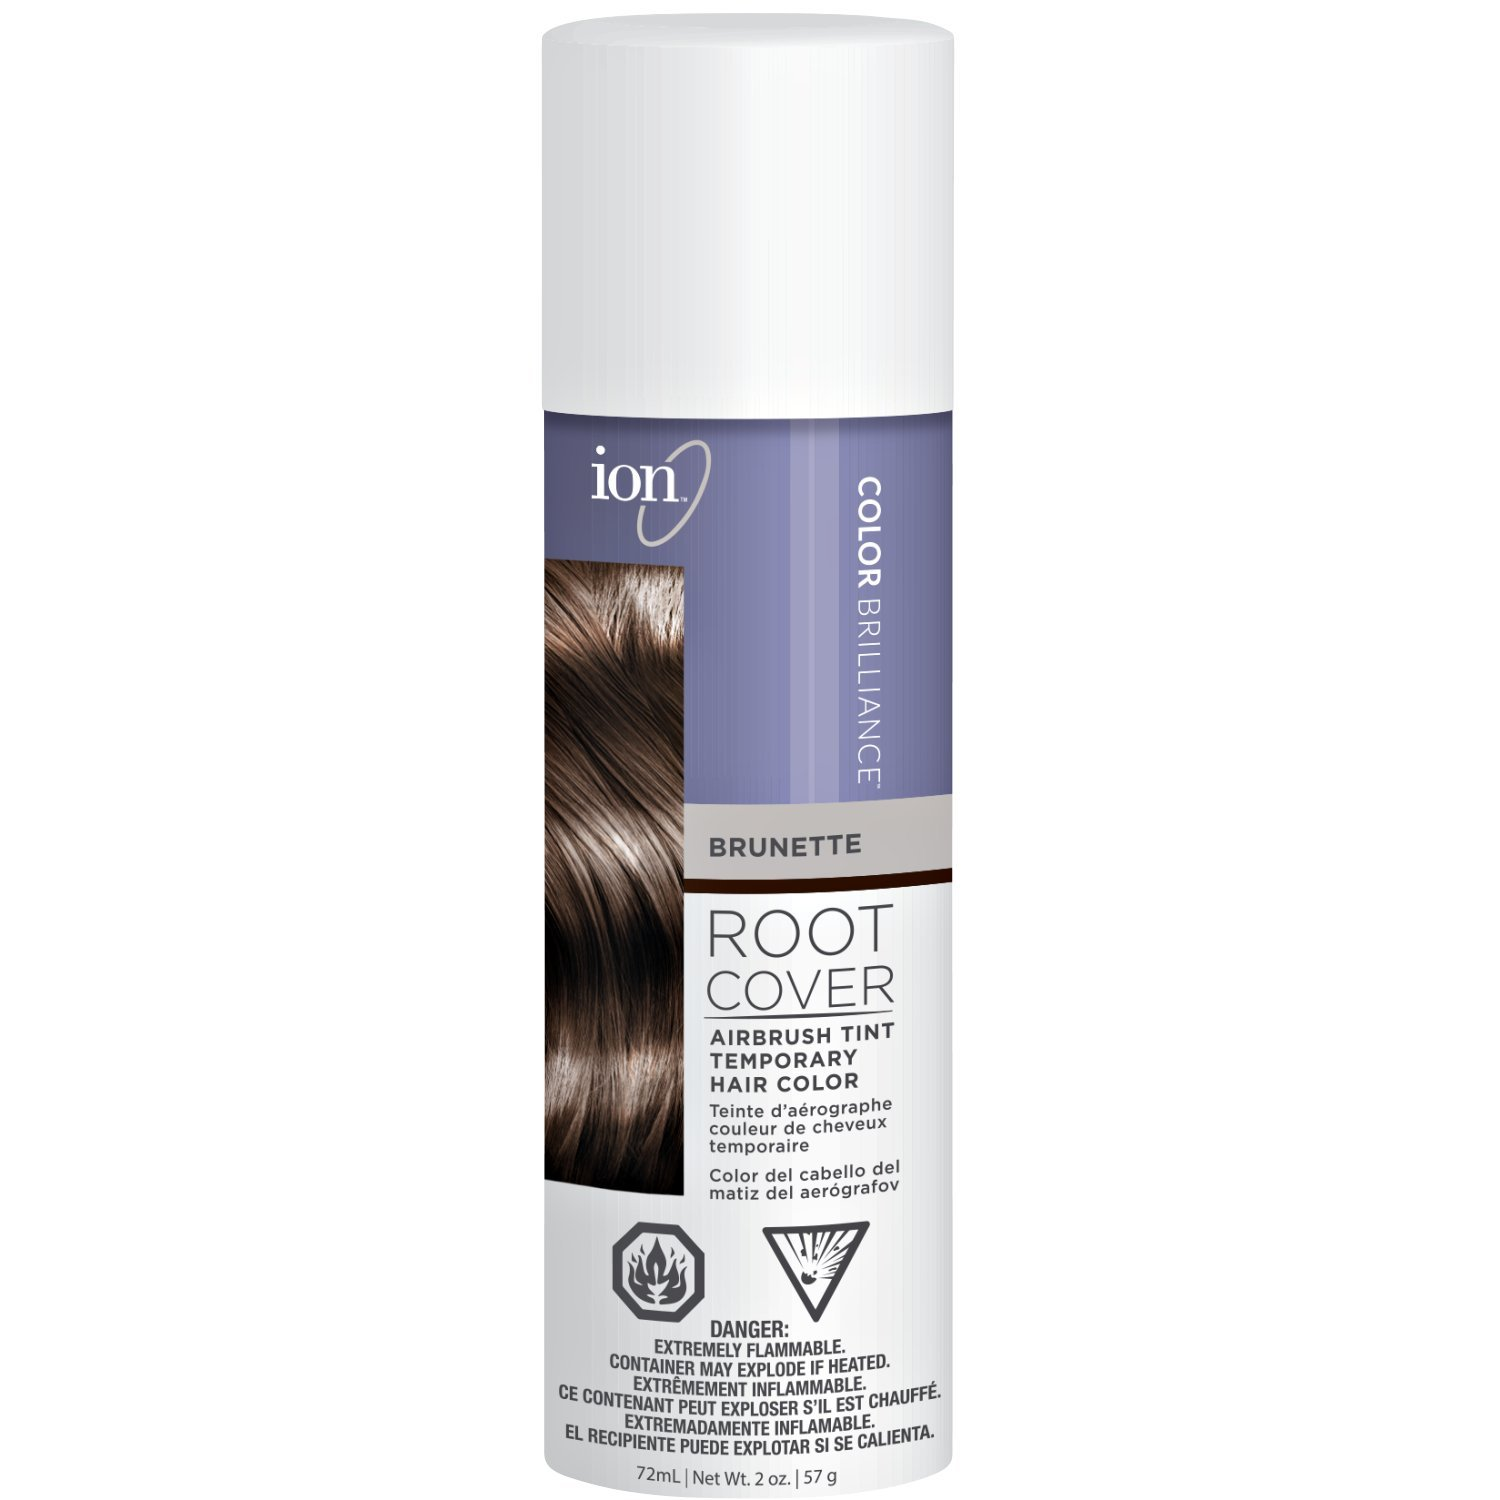 Nice Brunette Root Cover Airbrush Tint for cheap